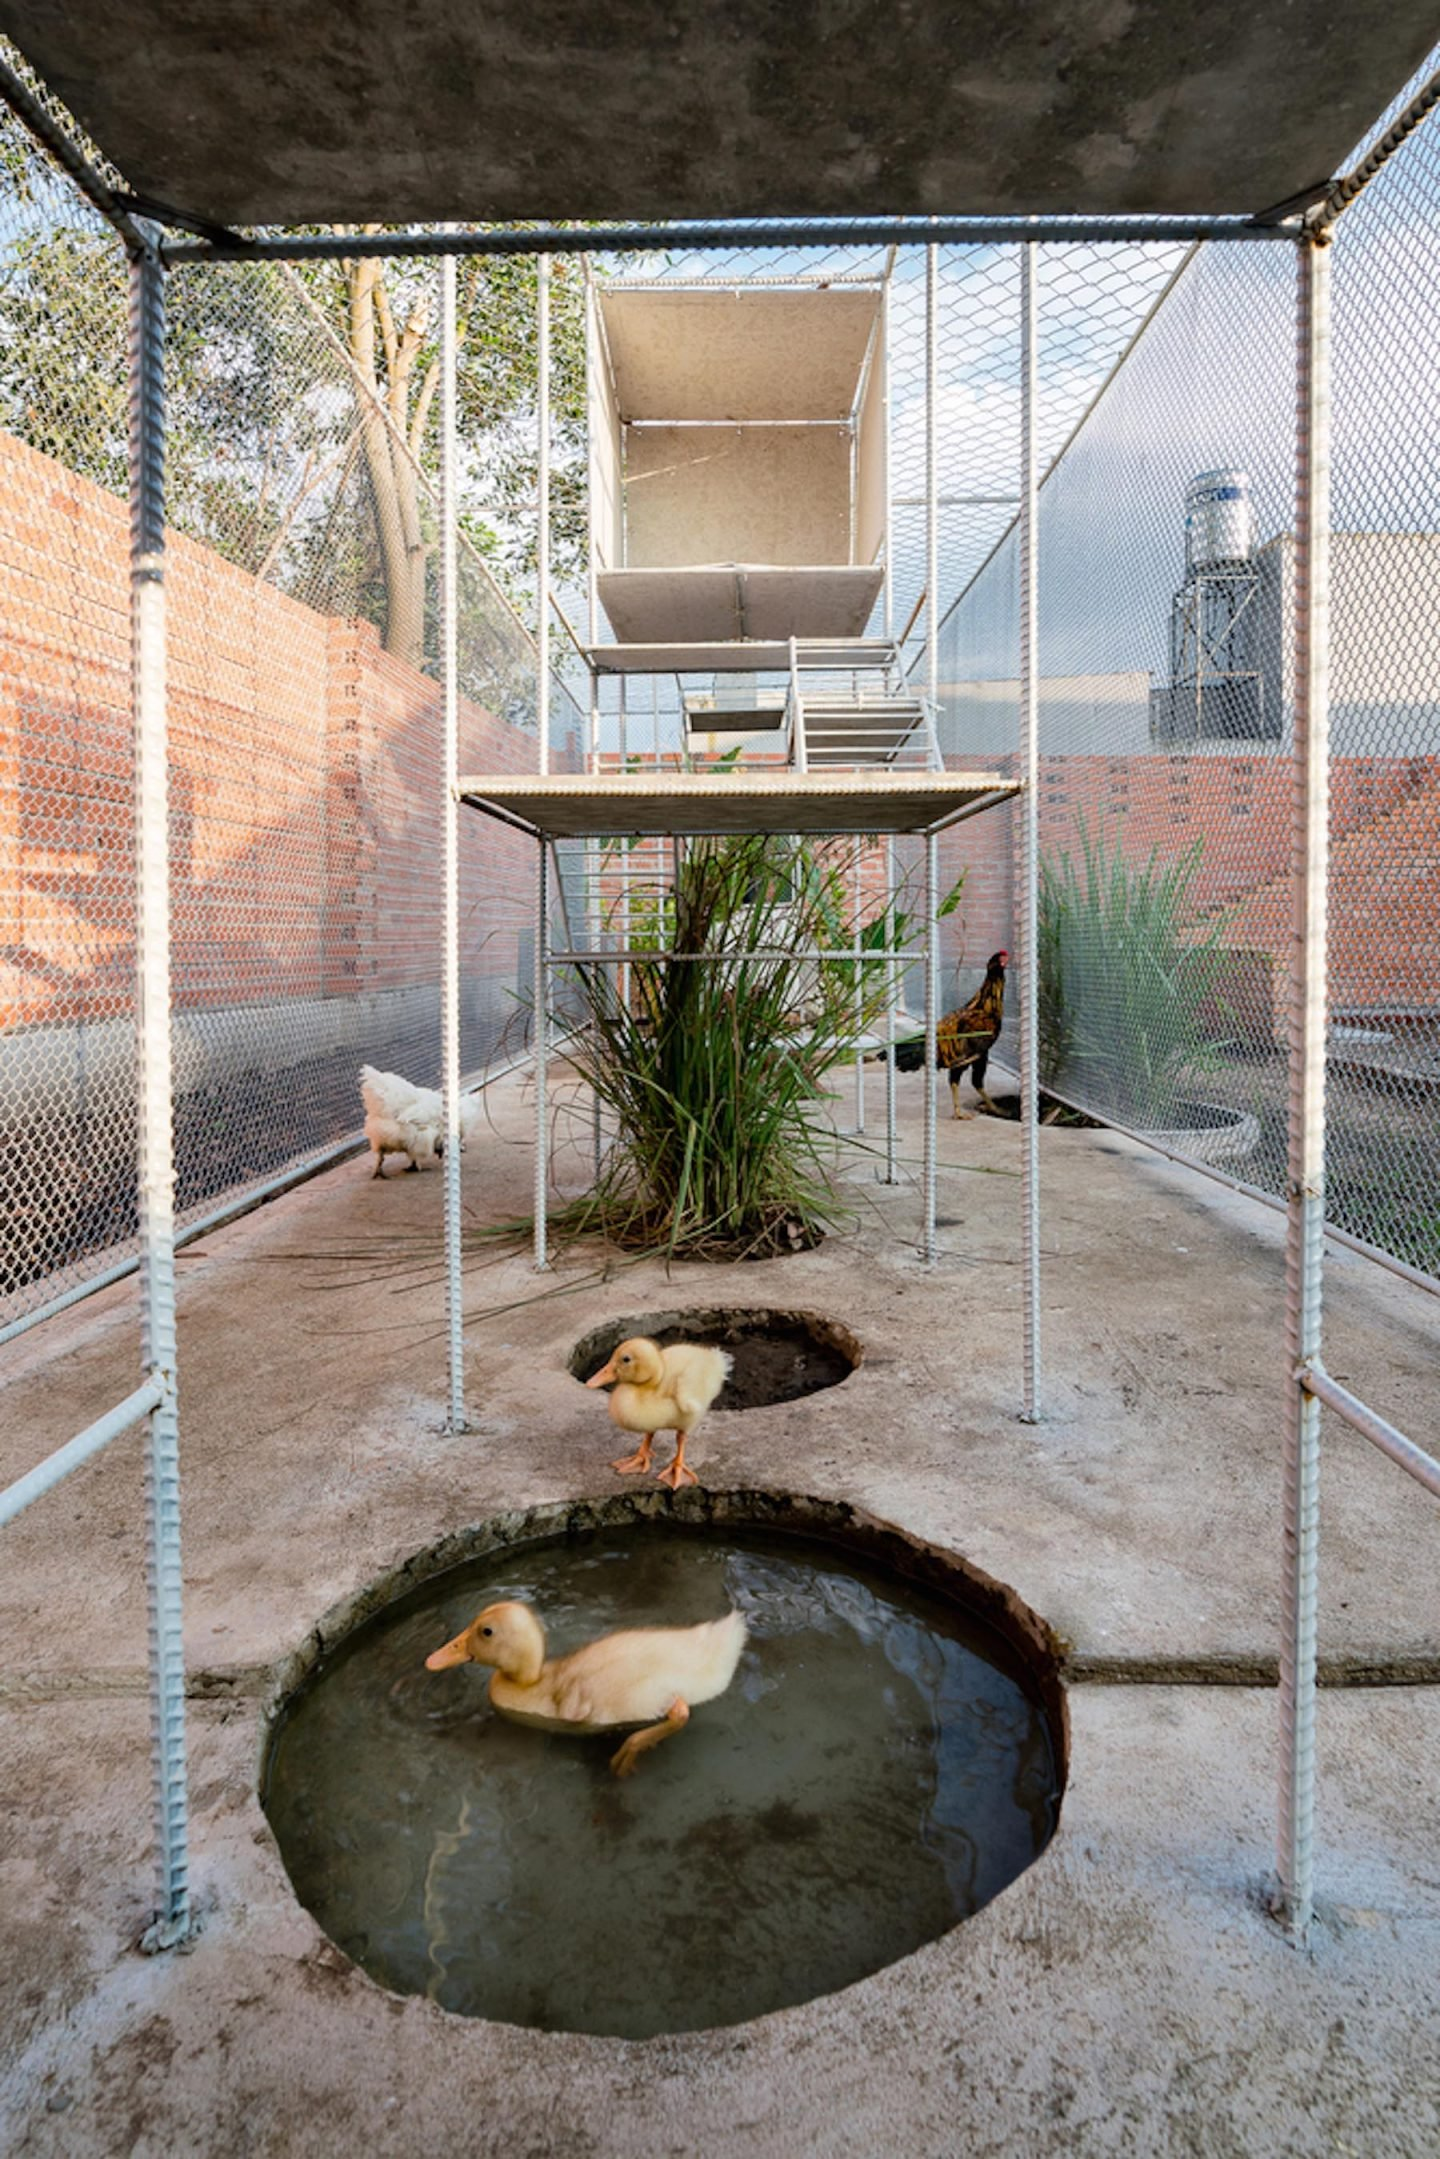 iGNANT-Architecture-Tropical-Space-Chicken-House-45